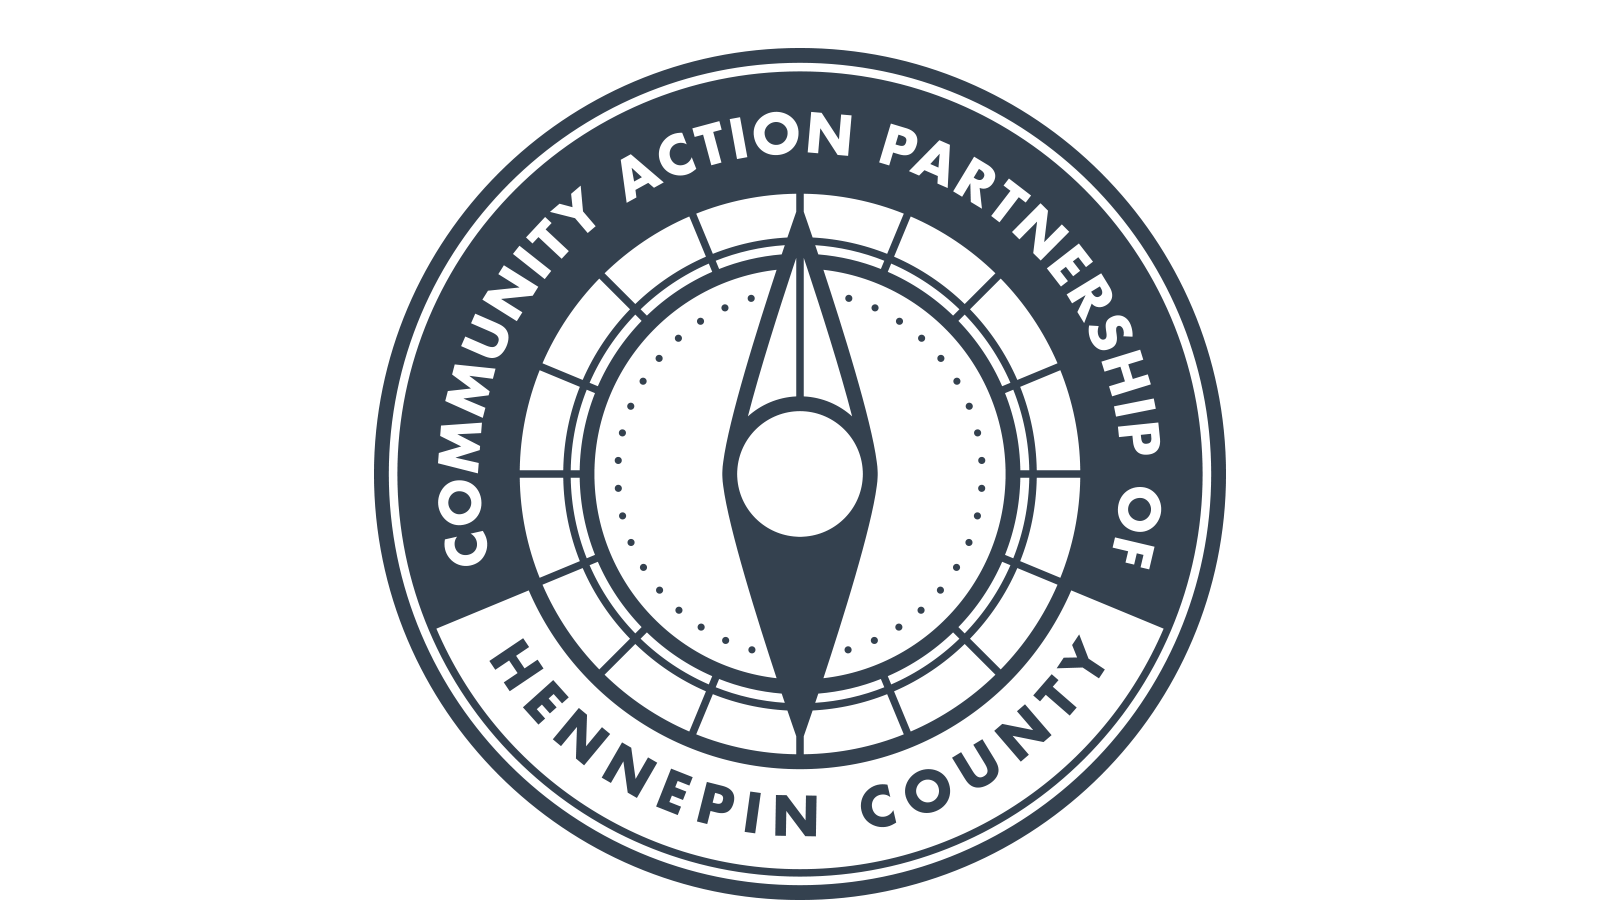 Community Action Partnership of Hennepin County logo